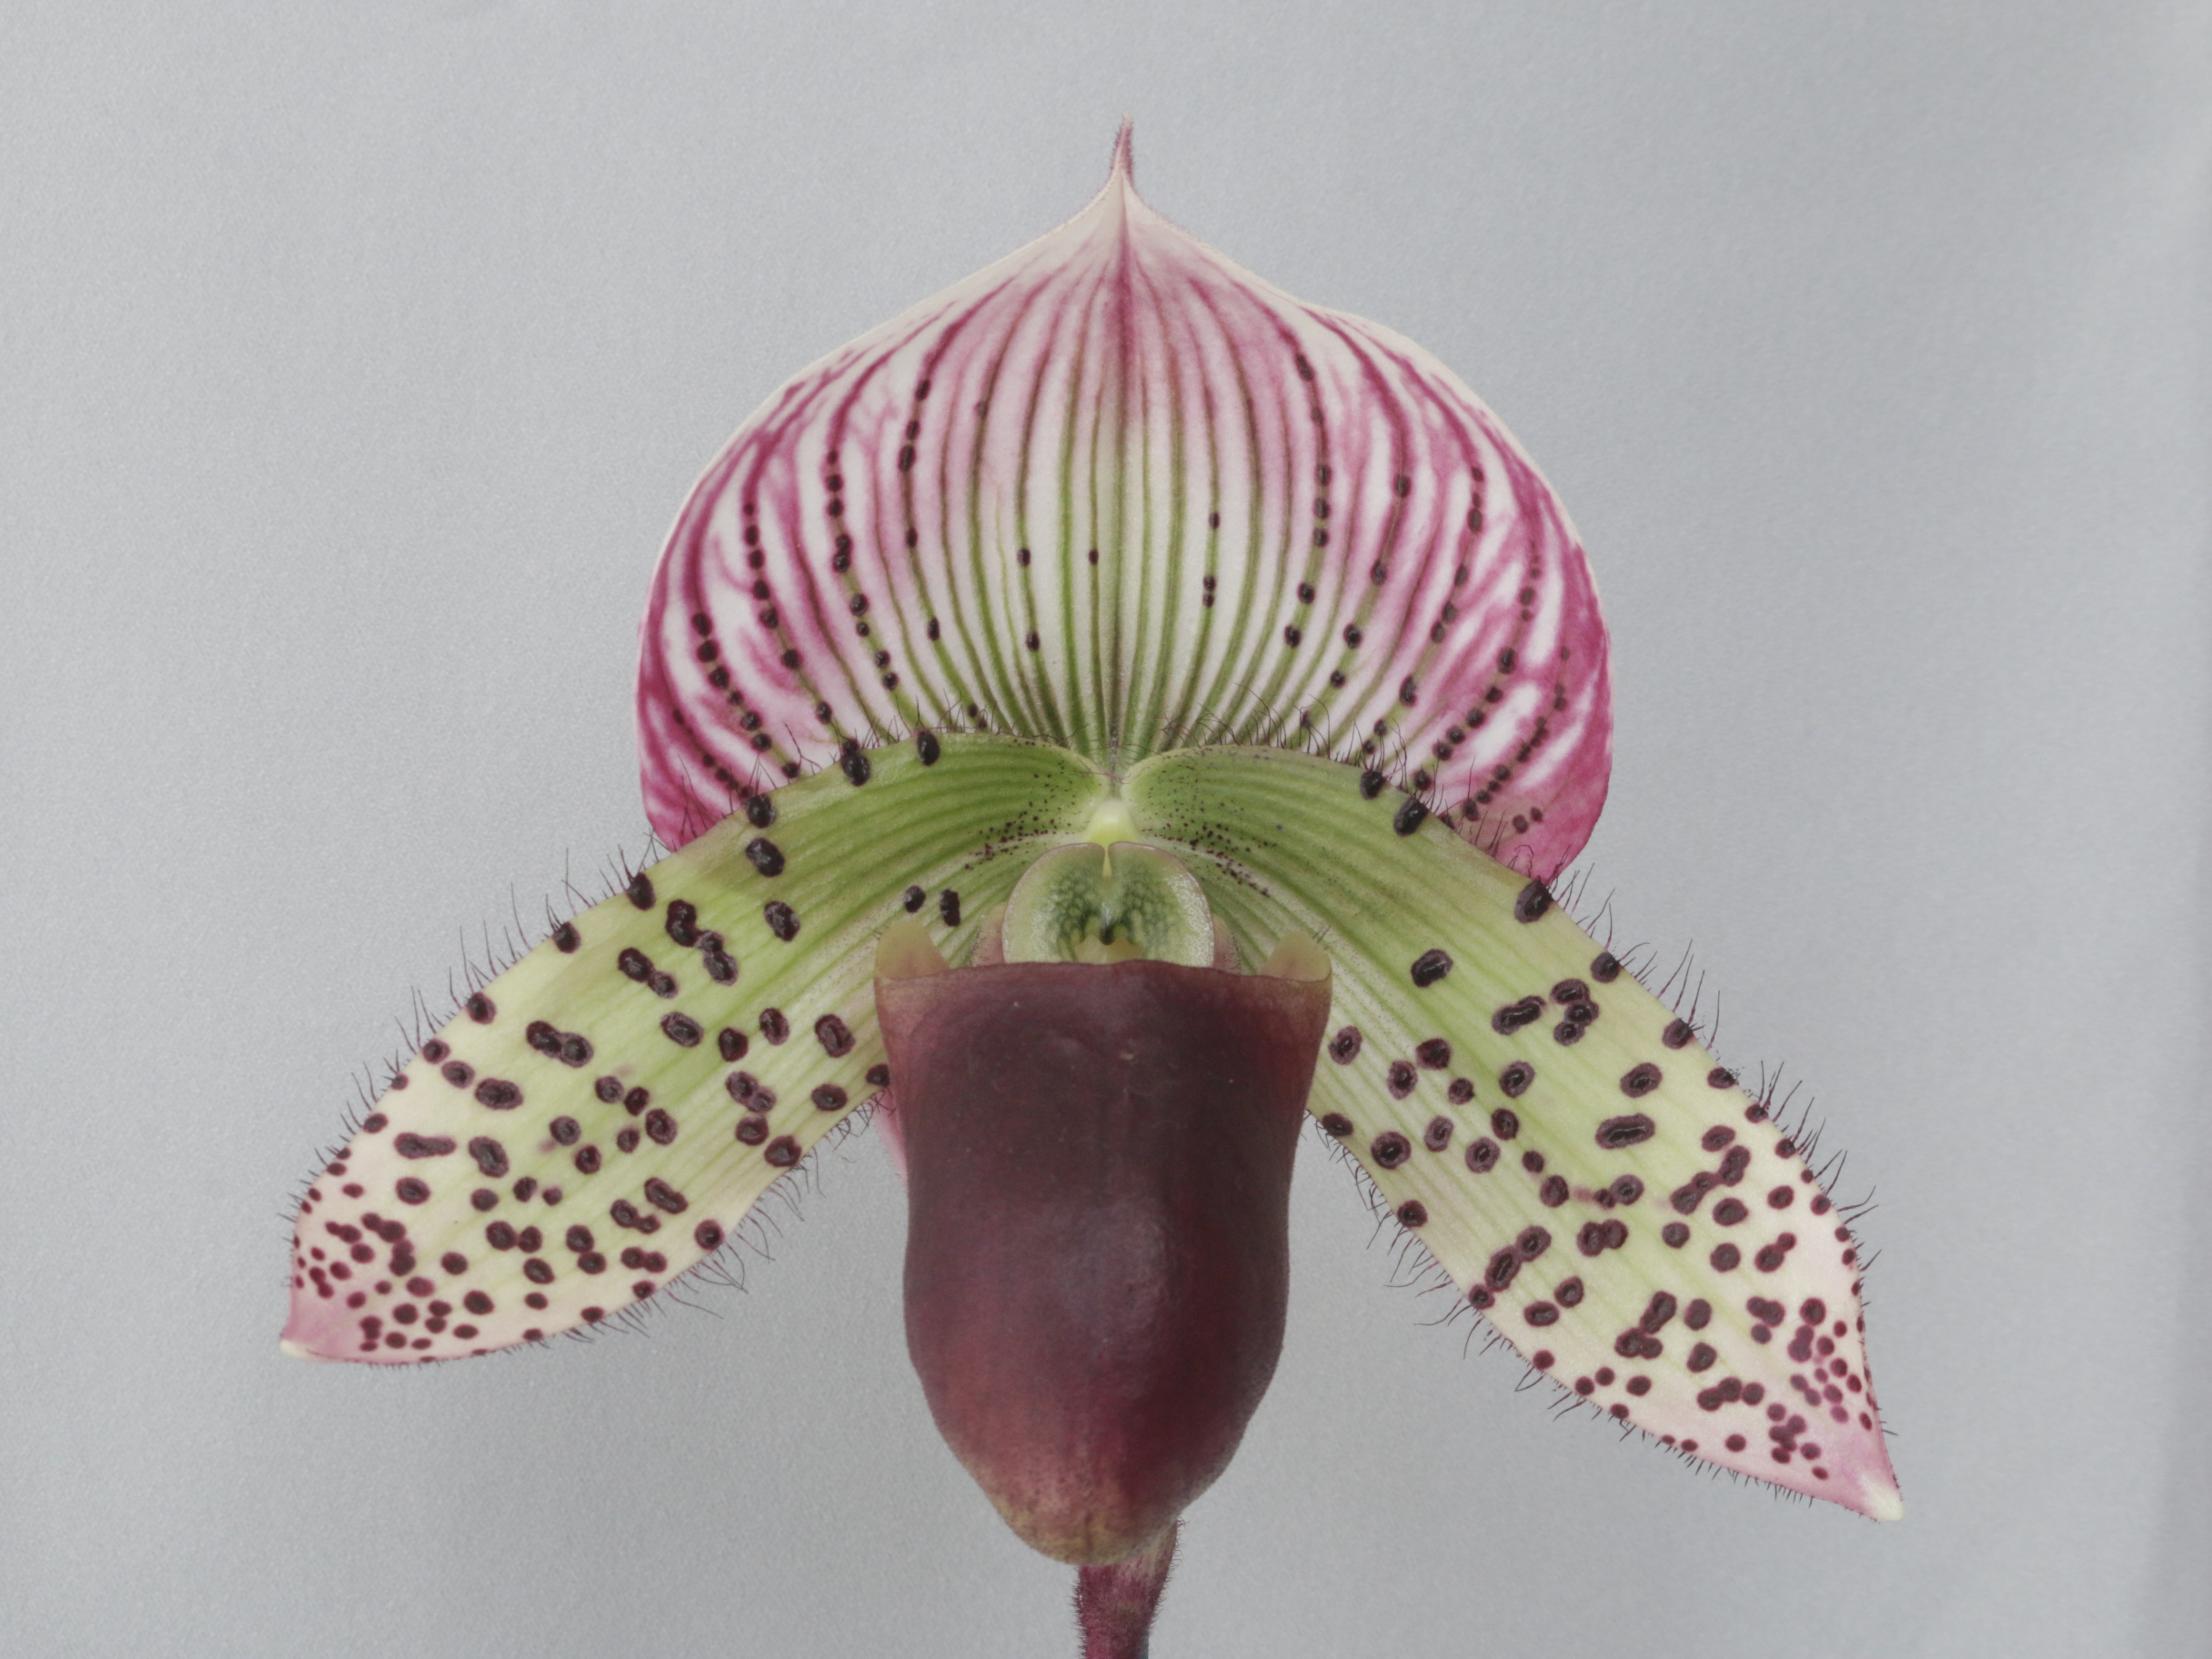 2016-048 Paph. Mack Imp 'Shellnick Surprise' AM 86.63 Owner C Whitby Photo C Hubbert OCNZ